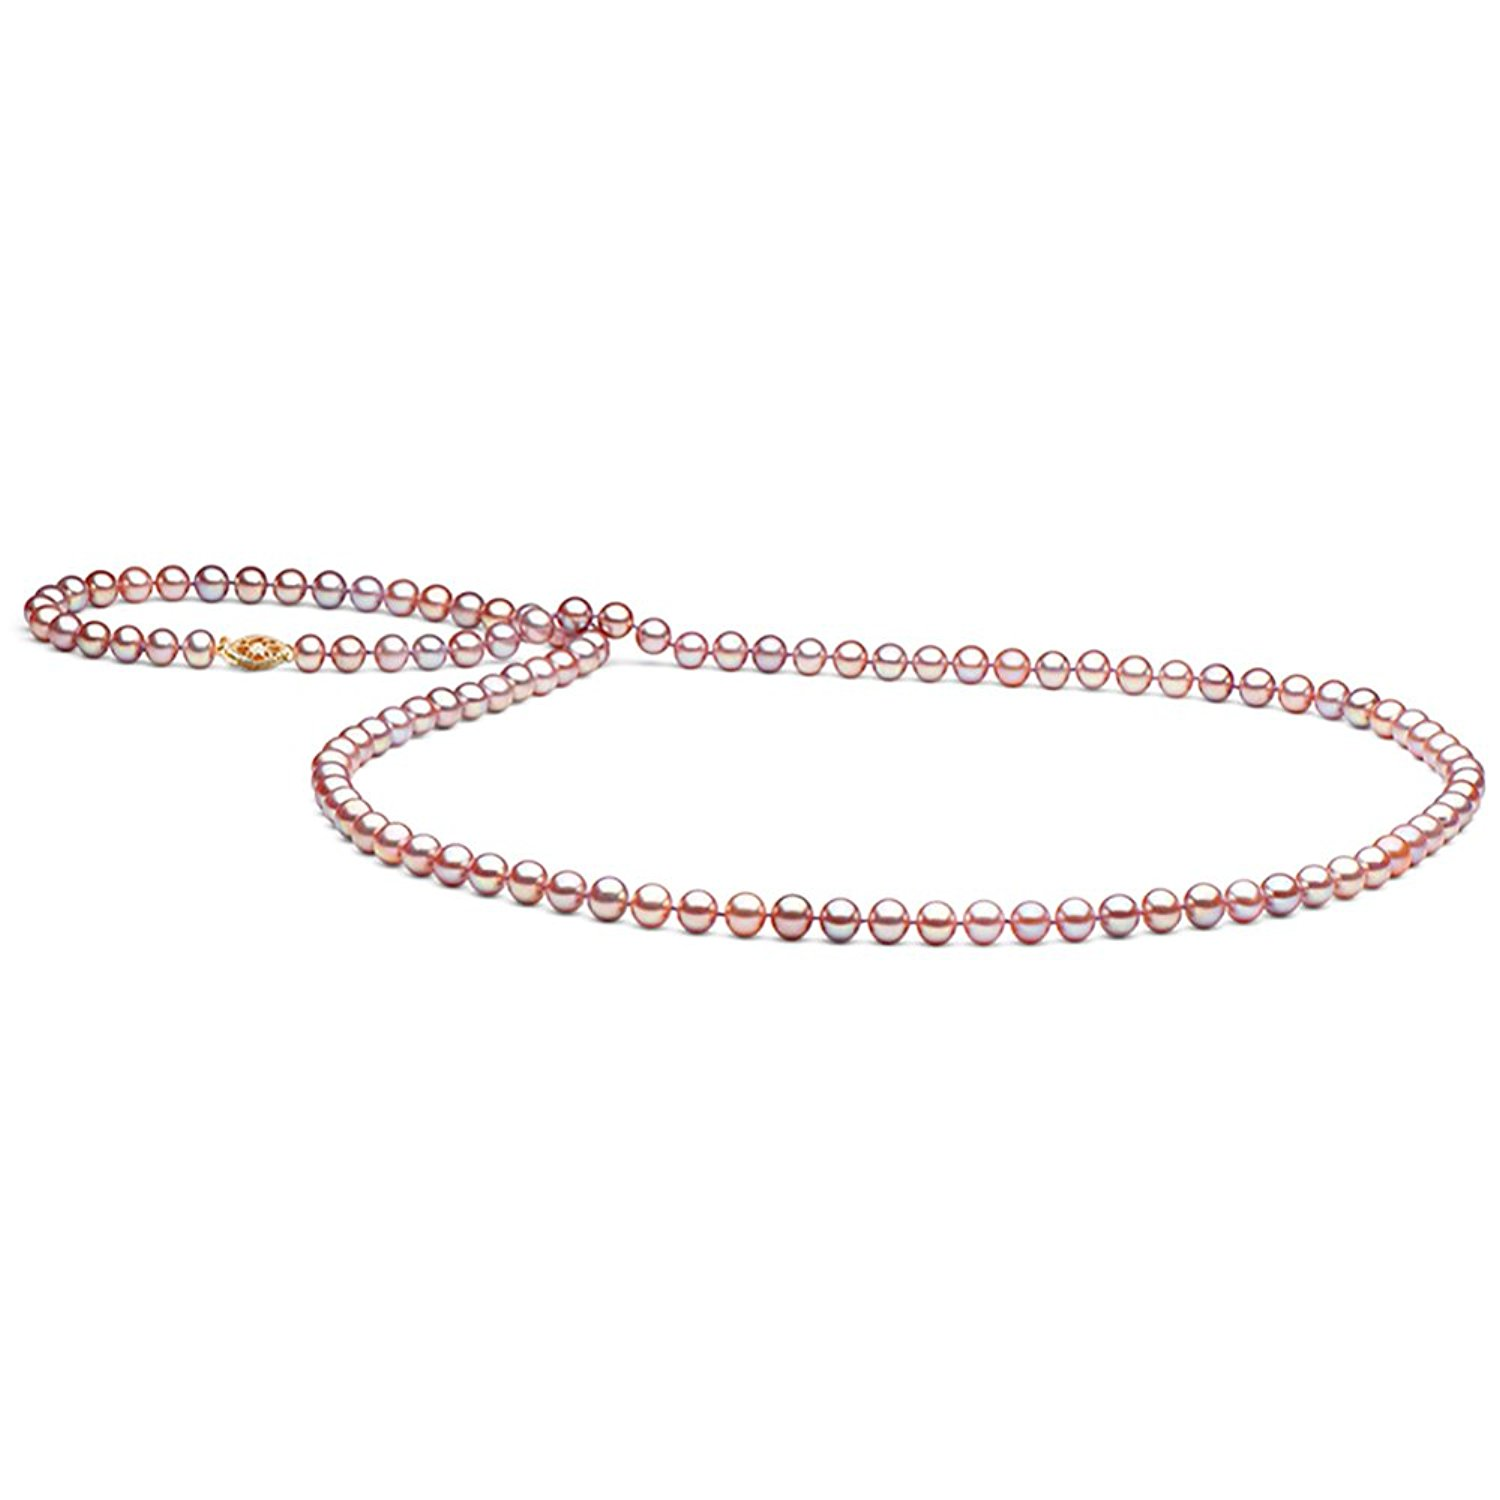 14K Cultured Natural-Color Pink Freshwater Pearl Necklace, 6.0-7.0mm - 35-Inch, AA+ Quality, Yellow Gold